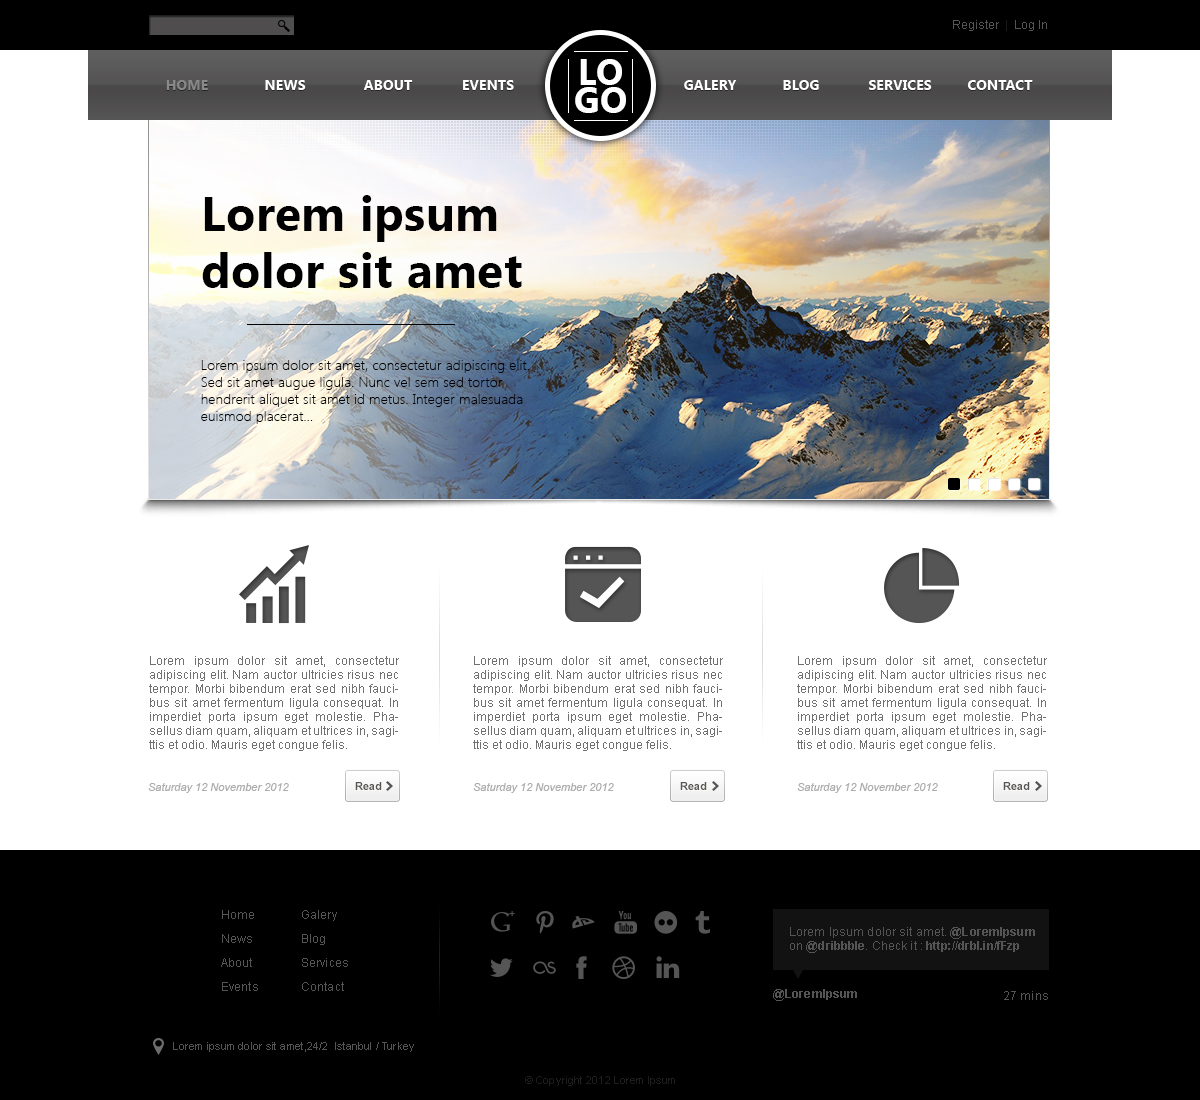 30 Free PSD Web Design Templates Inspirationfeed qkacUAdr